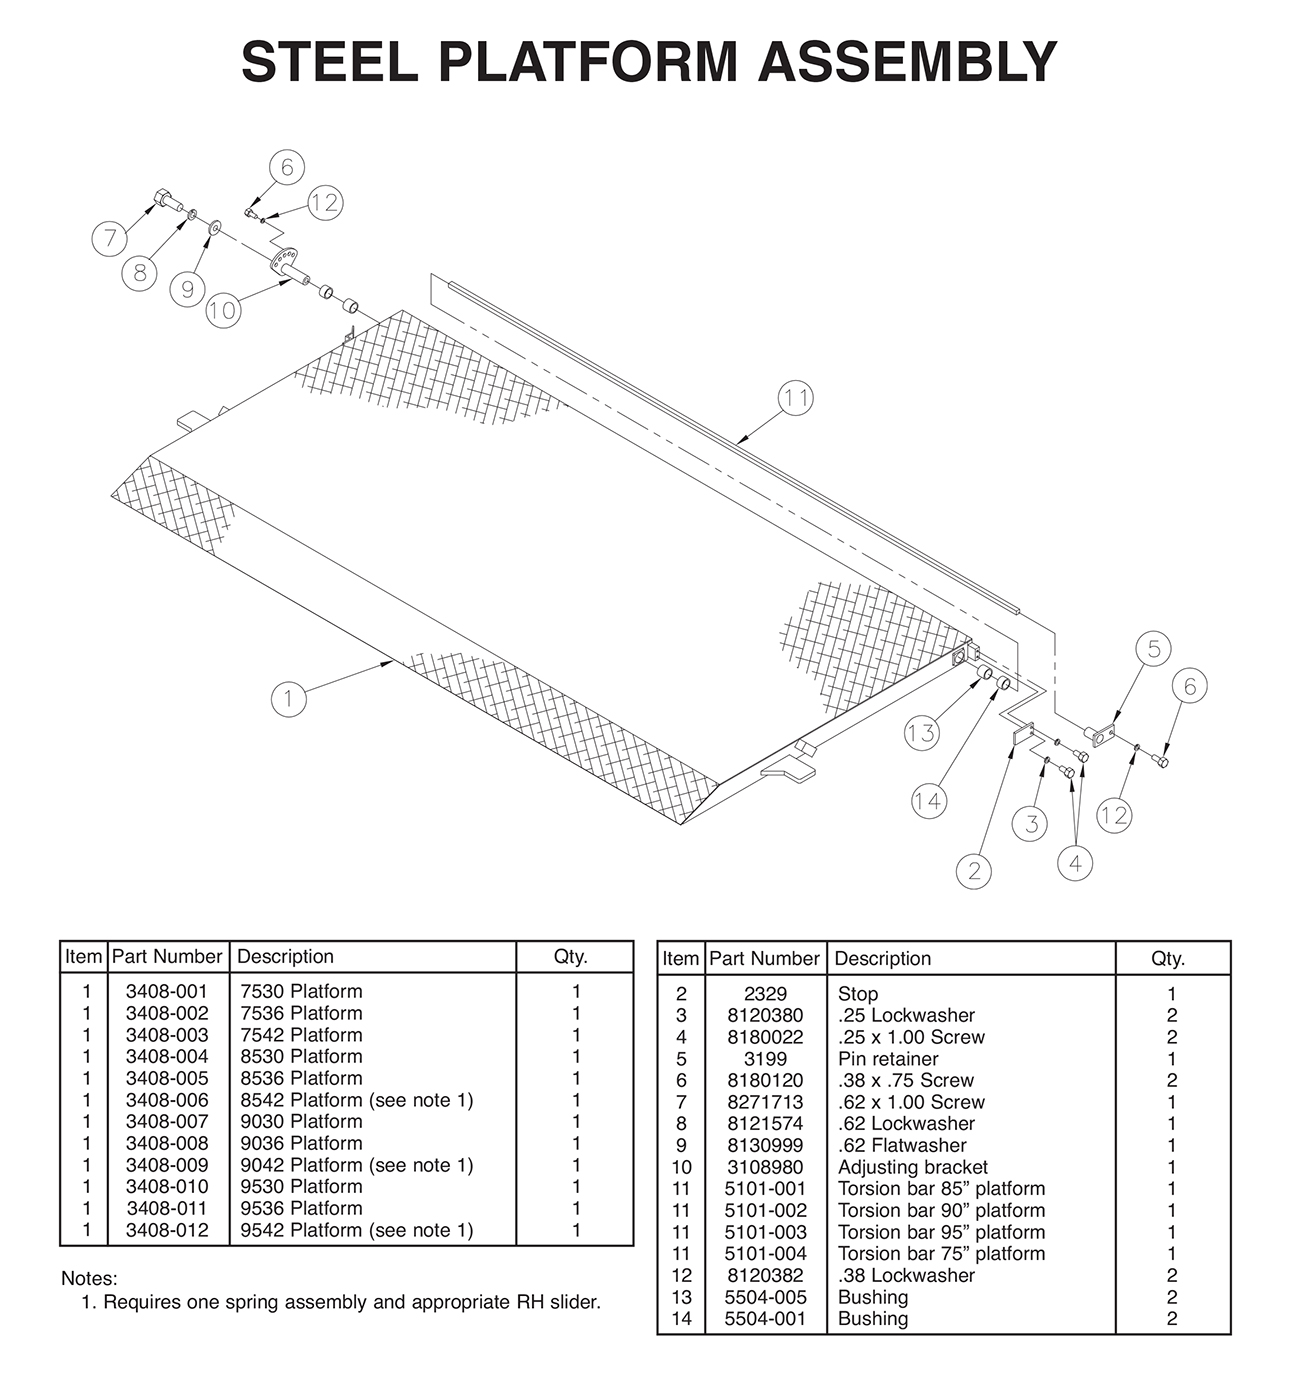 TVLR 20/20A Steel Platform Assembly Diagram